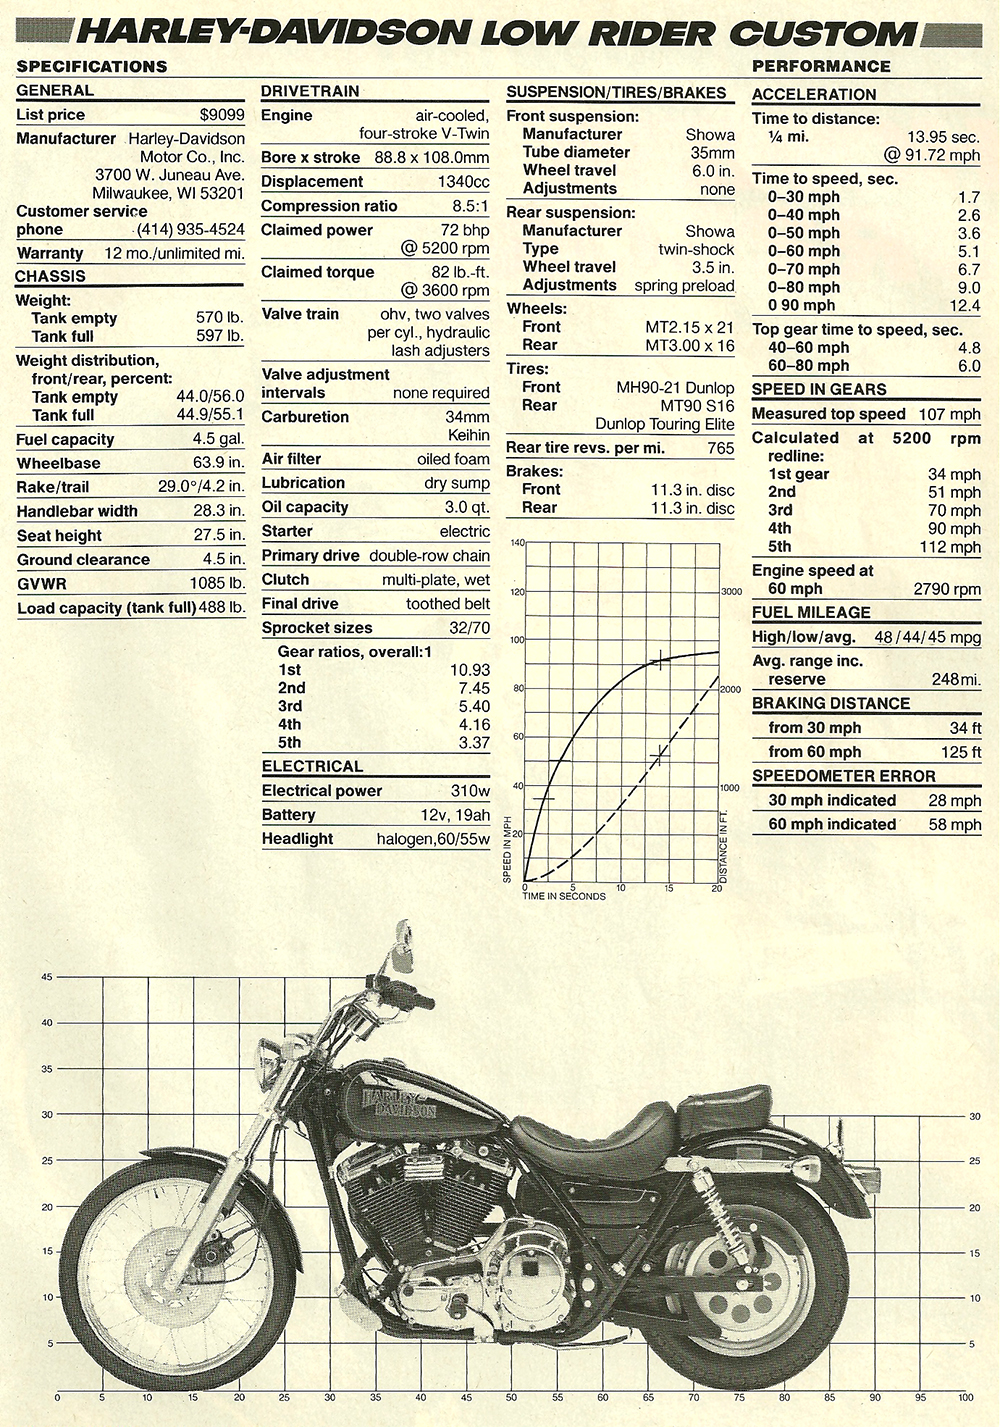 1987 Harley low rider custom fxlr road test 04.jpg